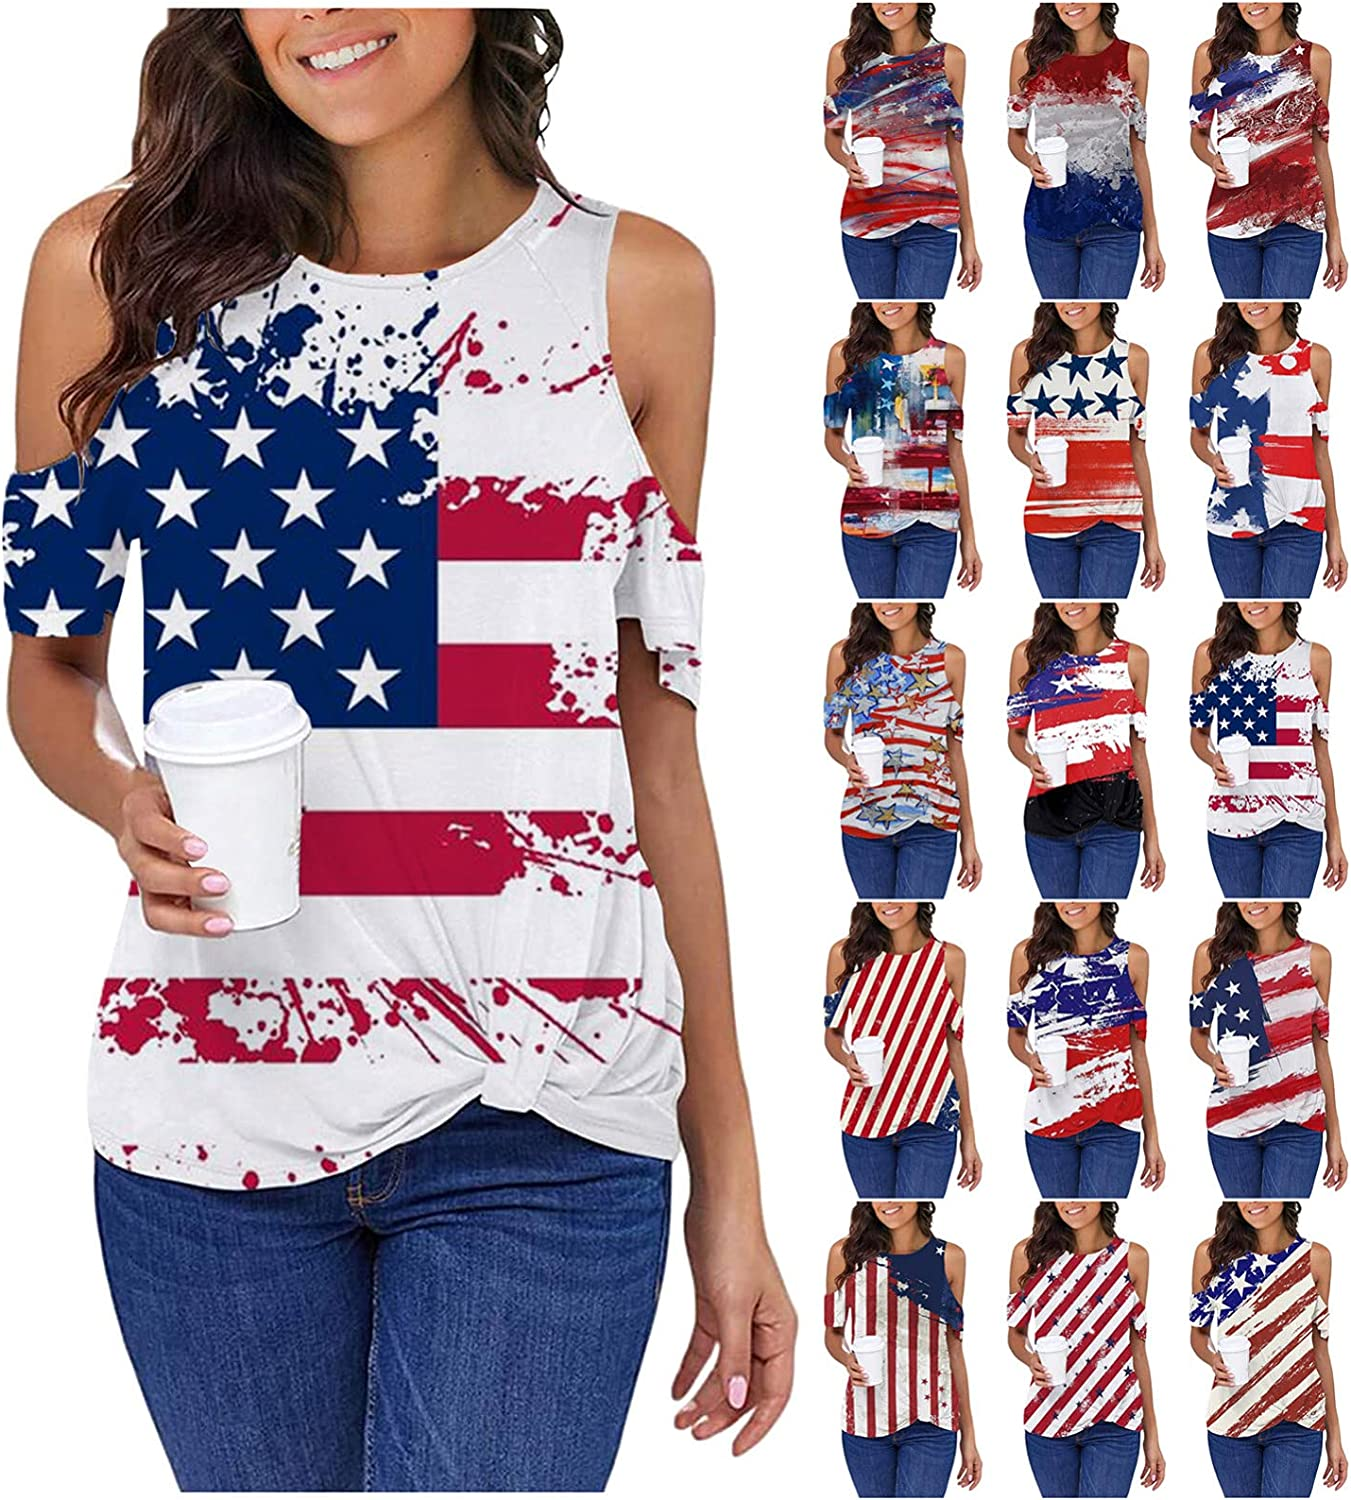 OR July 4th Shirts for Women, Womens Summer Casual T Shirts Short Sleeve Tunic Cold Shoulder Tops Blouses Flag Shirt